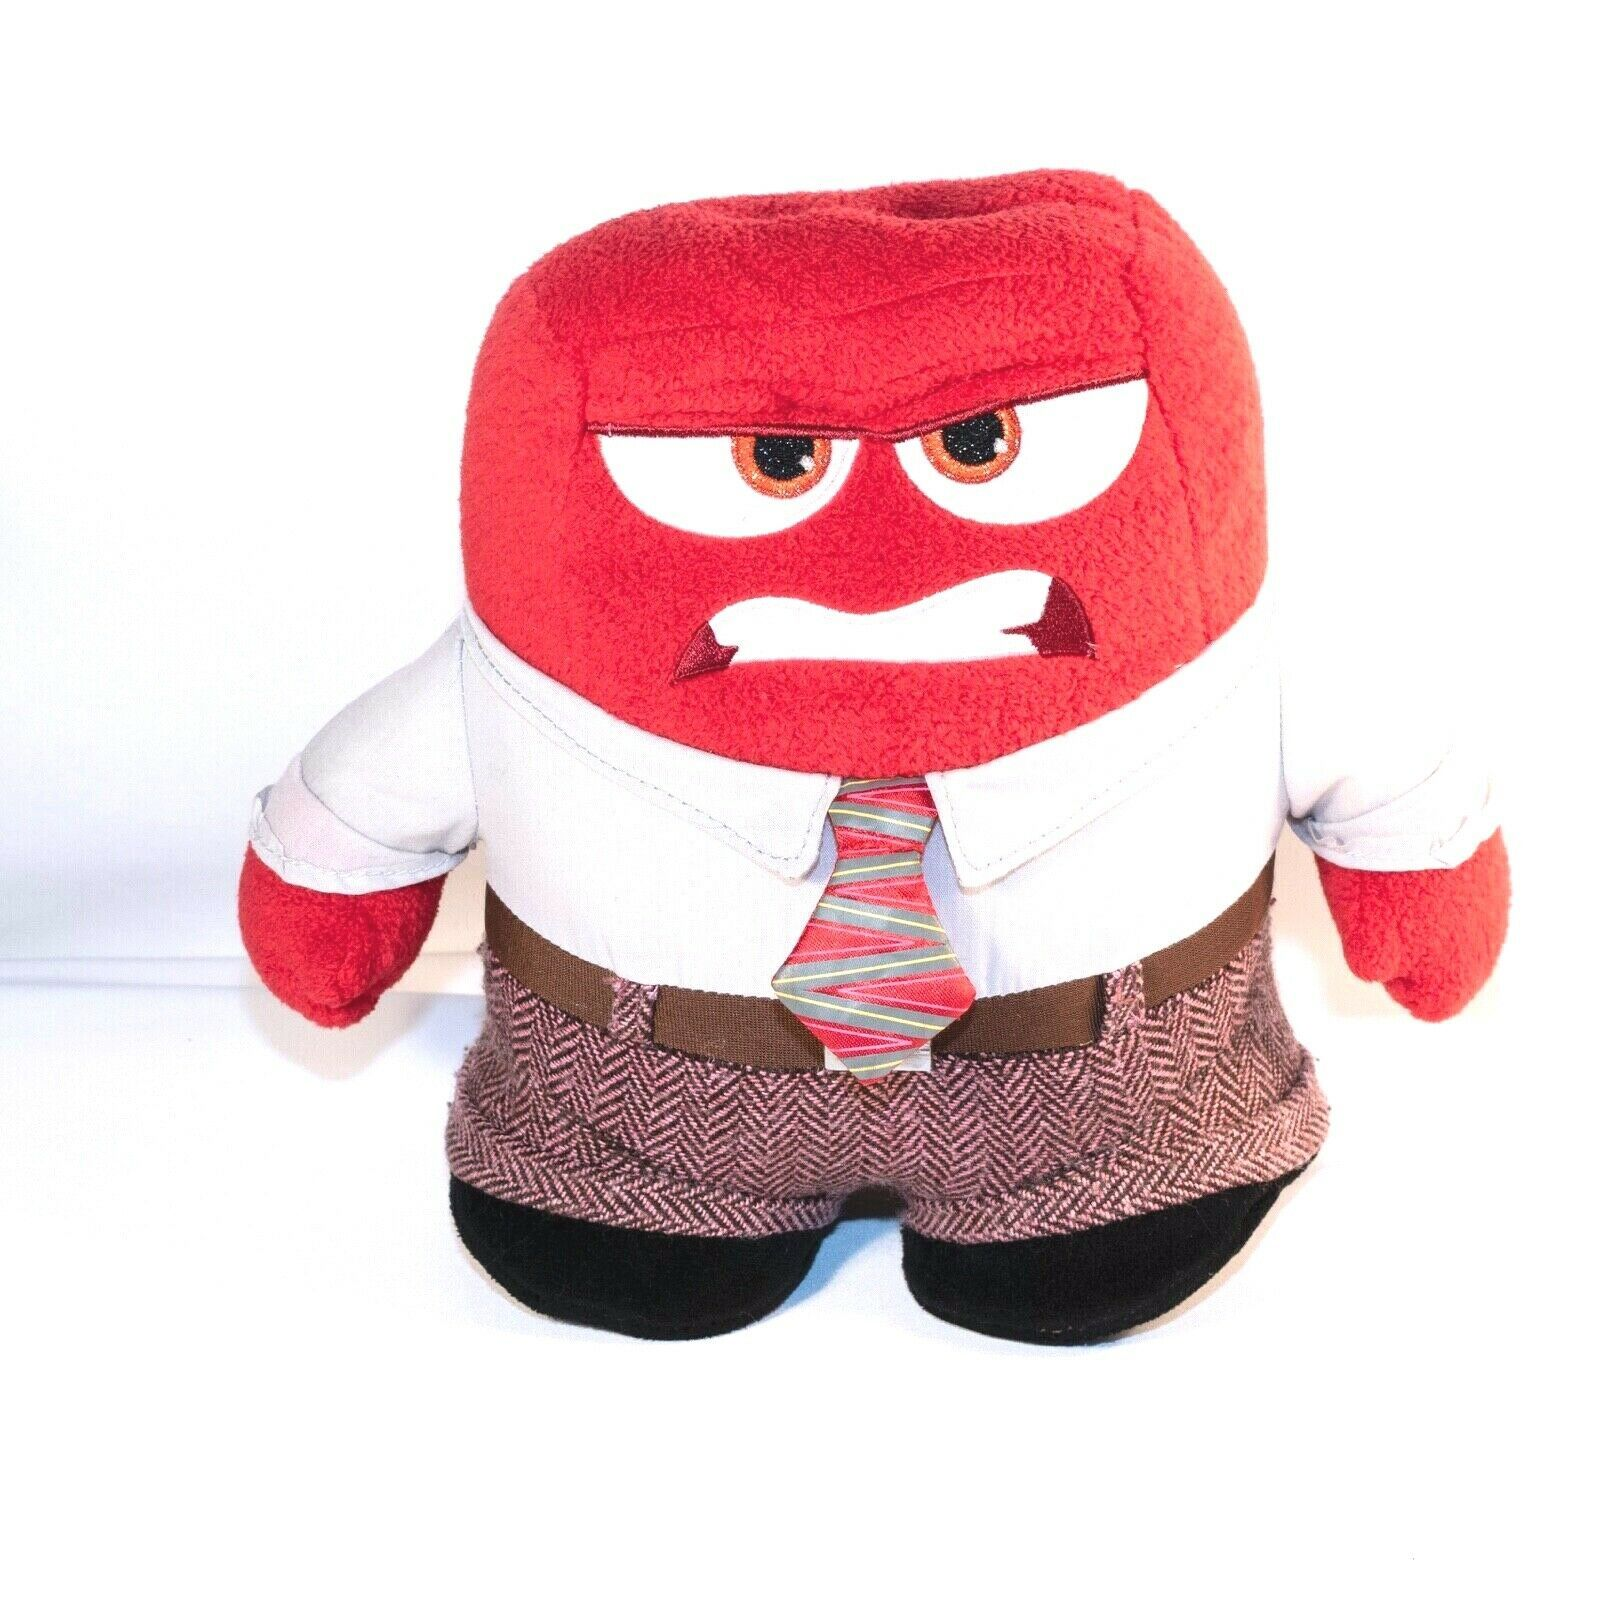 """Disney Pixar Inside Out ANGER 7"""" Plush ANGRY RED"""